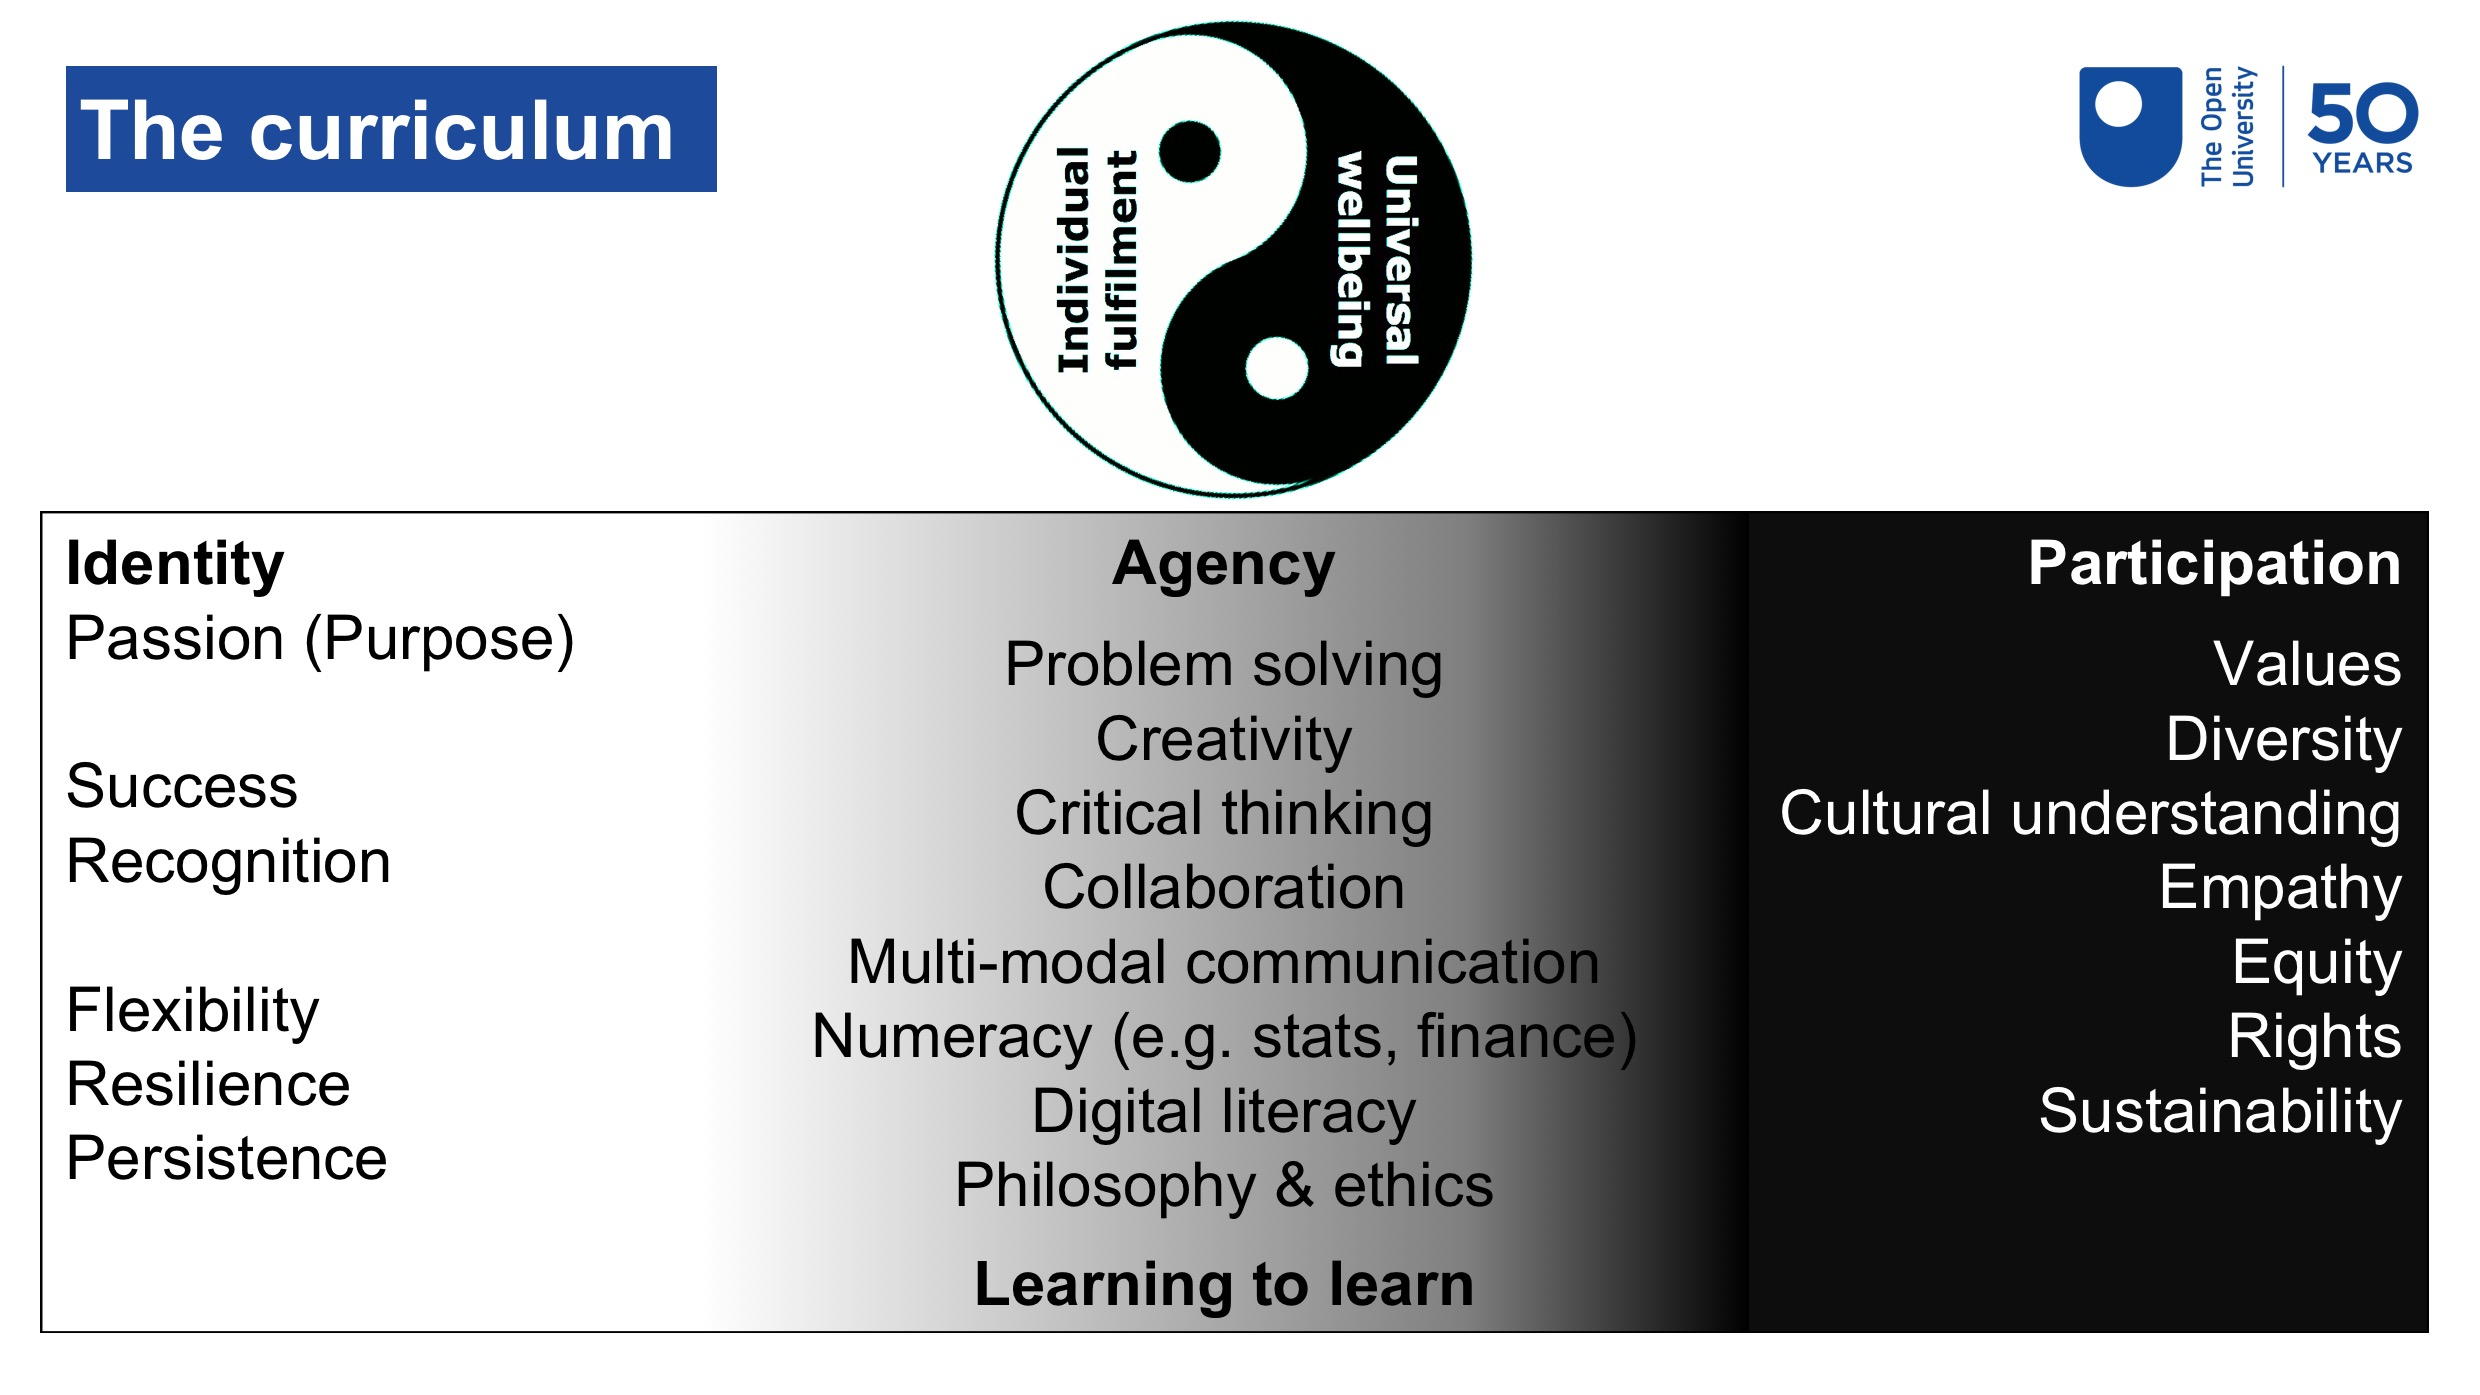 Shows the Yin-Yang vision plus the related curriculum elements